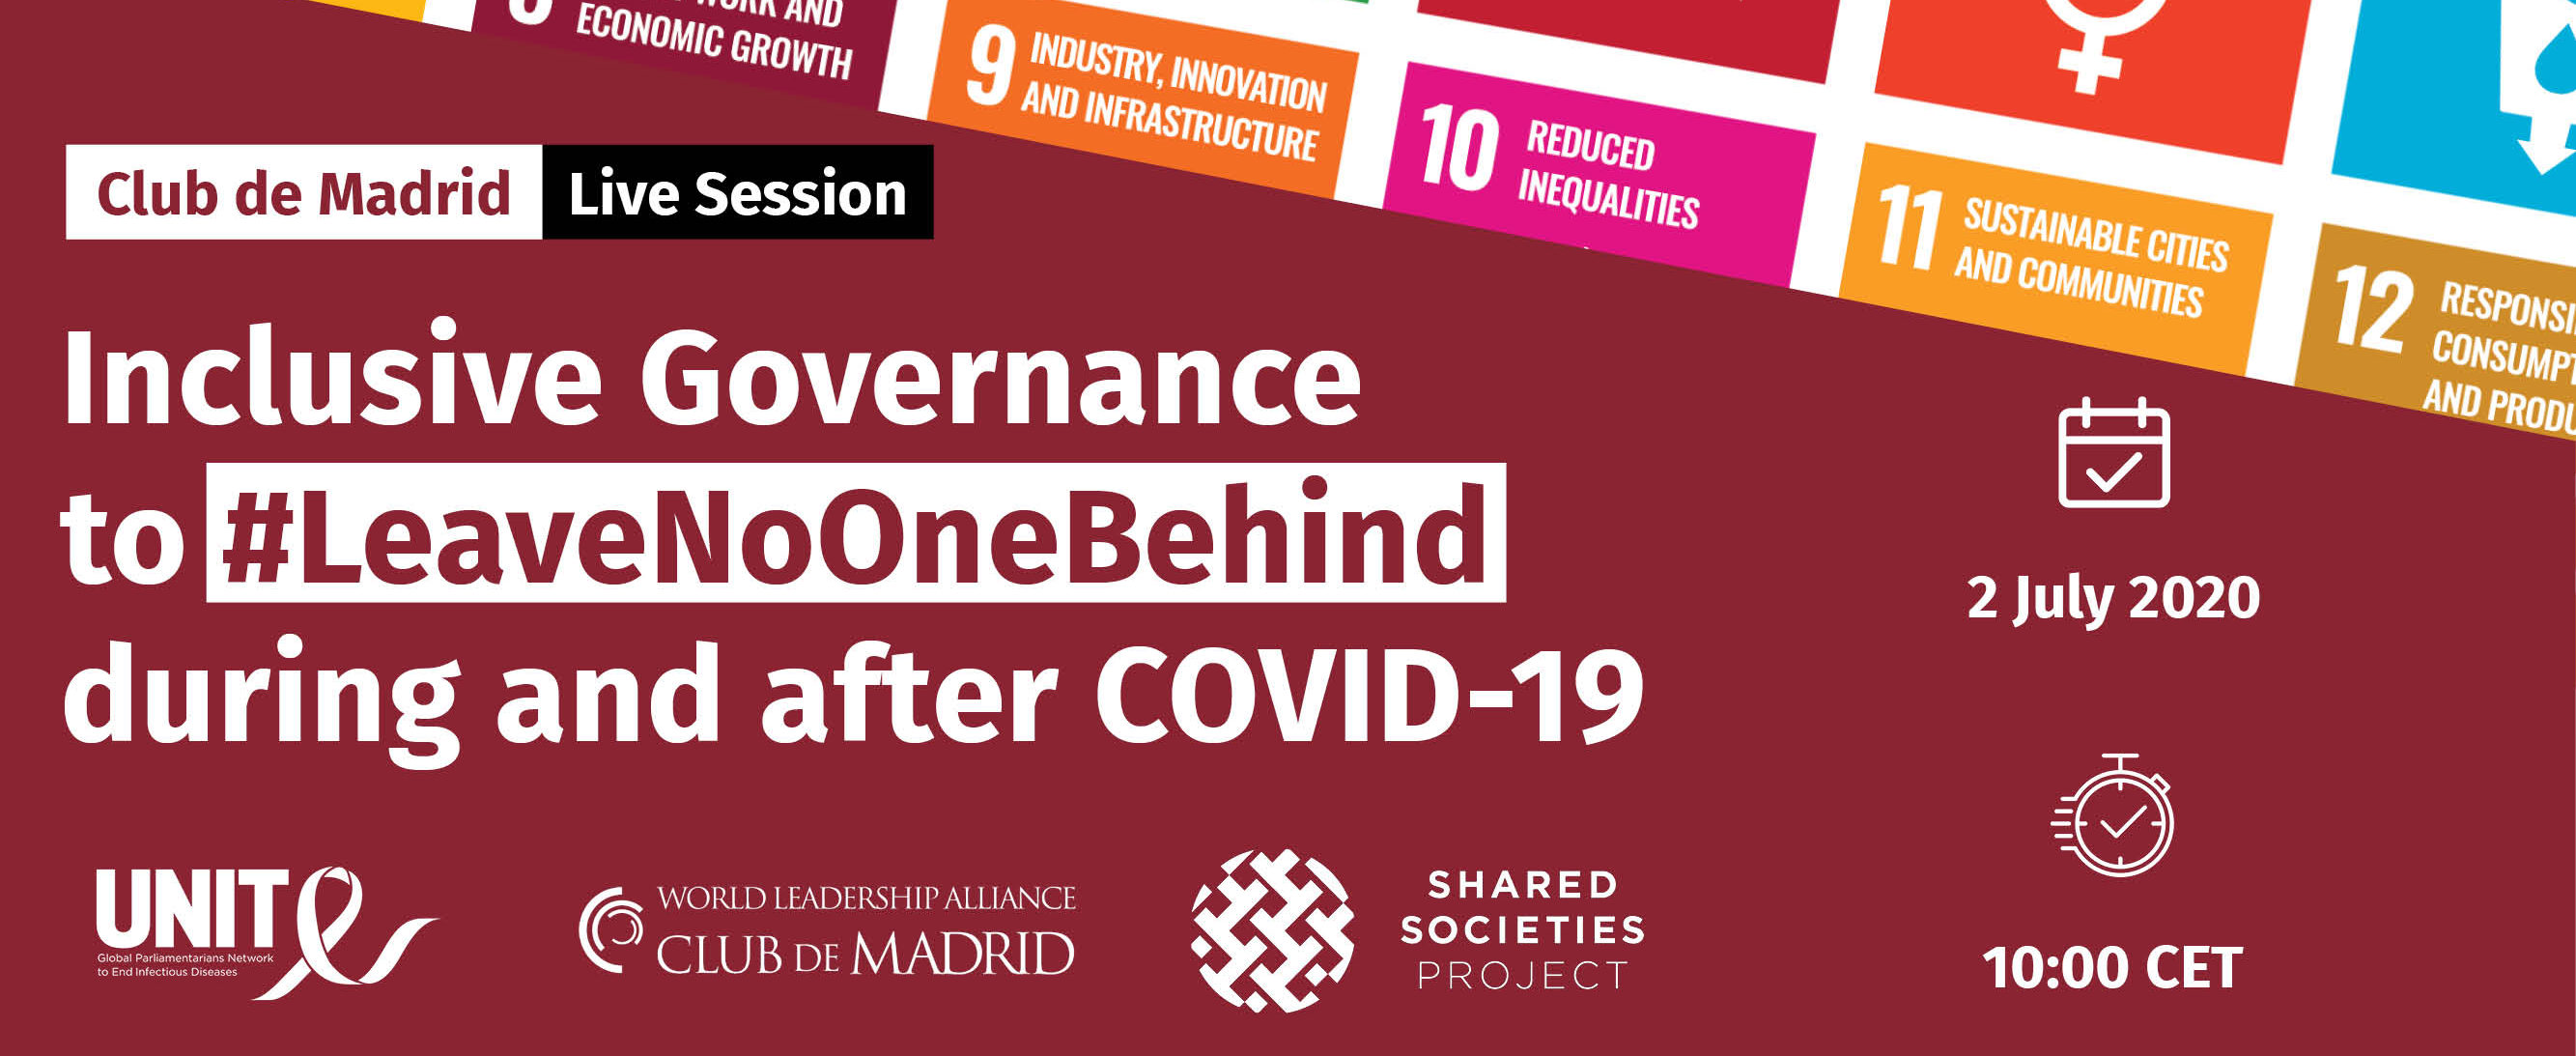 Live Session: Inclusive Governance to #LeaveNoOneBehind during and after COVID-19